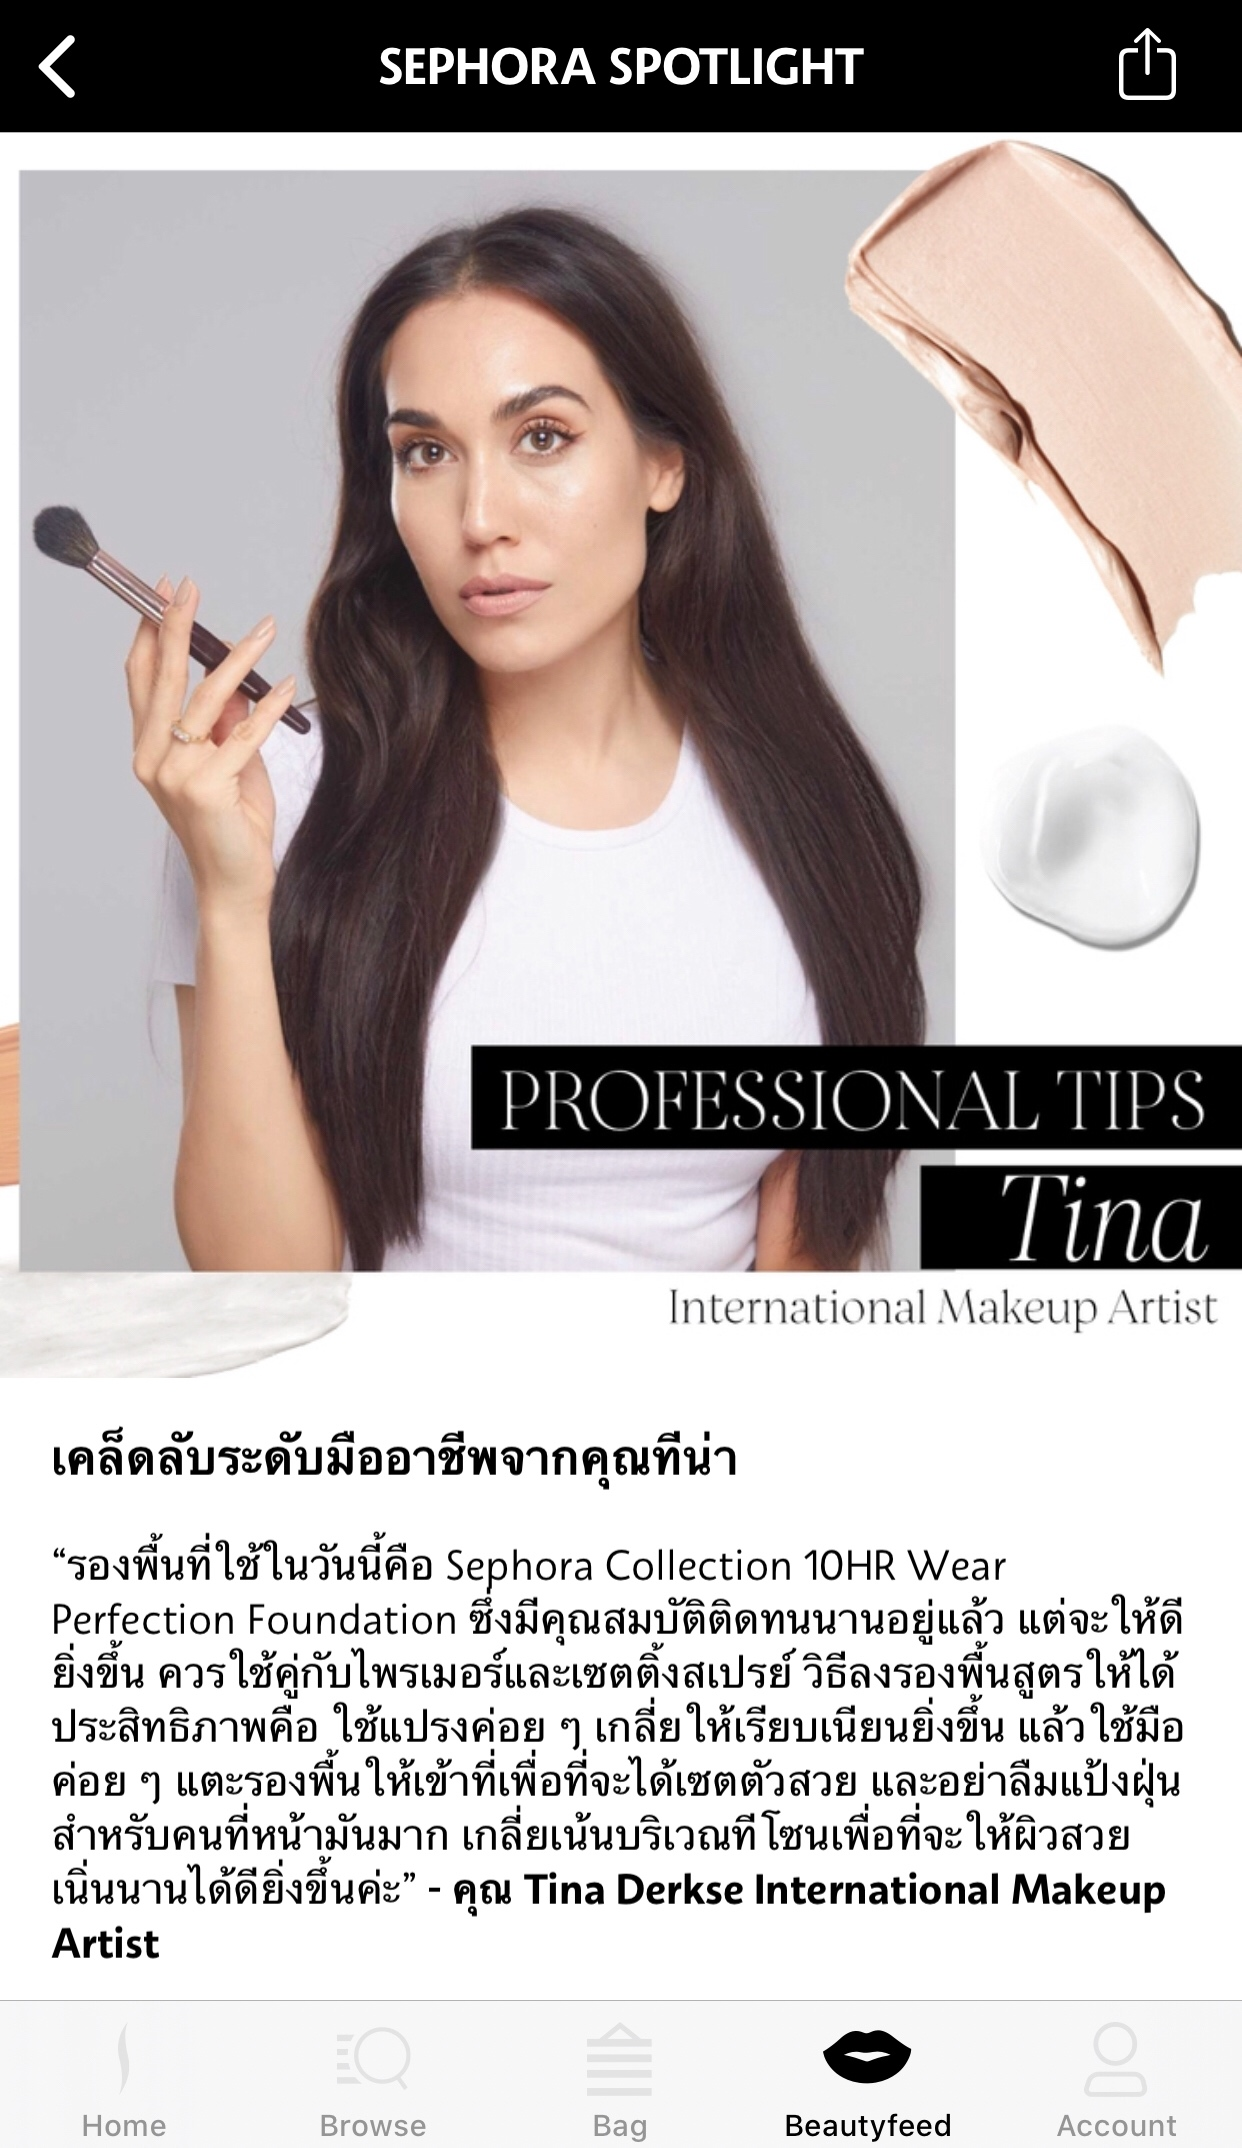 sephora spotlight beauty portfolio - how to all day on fleek - international makeup artist thailand - savourbytina